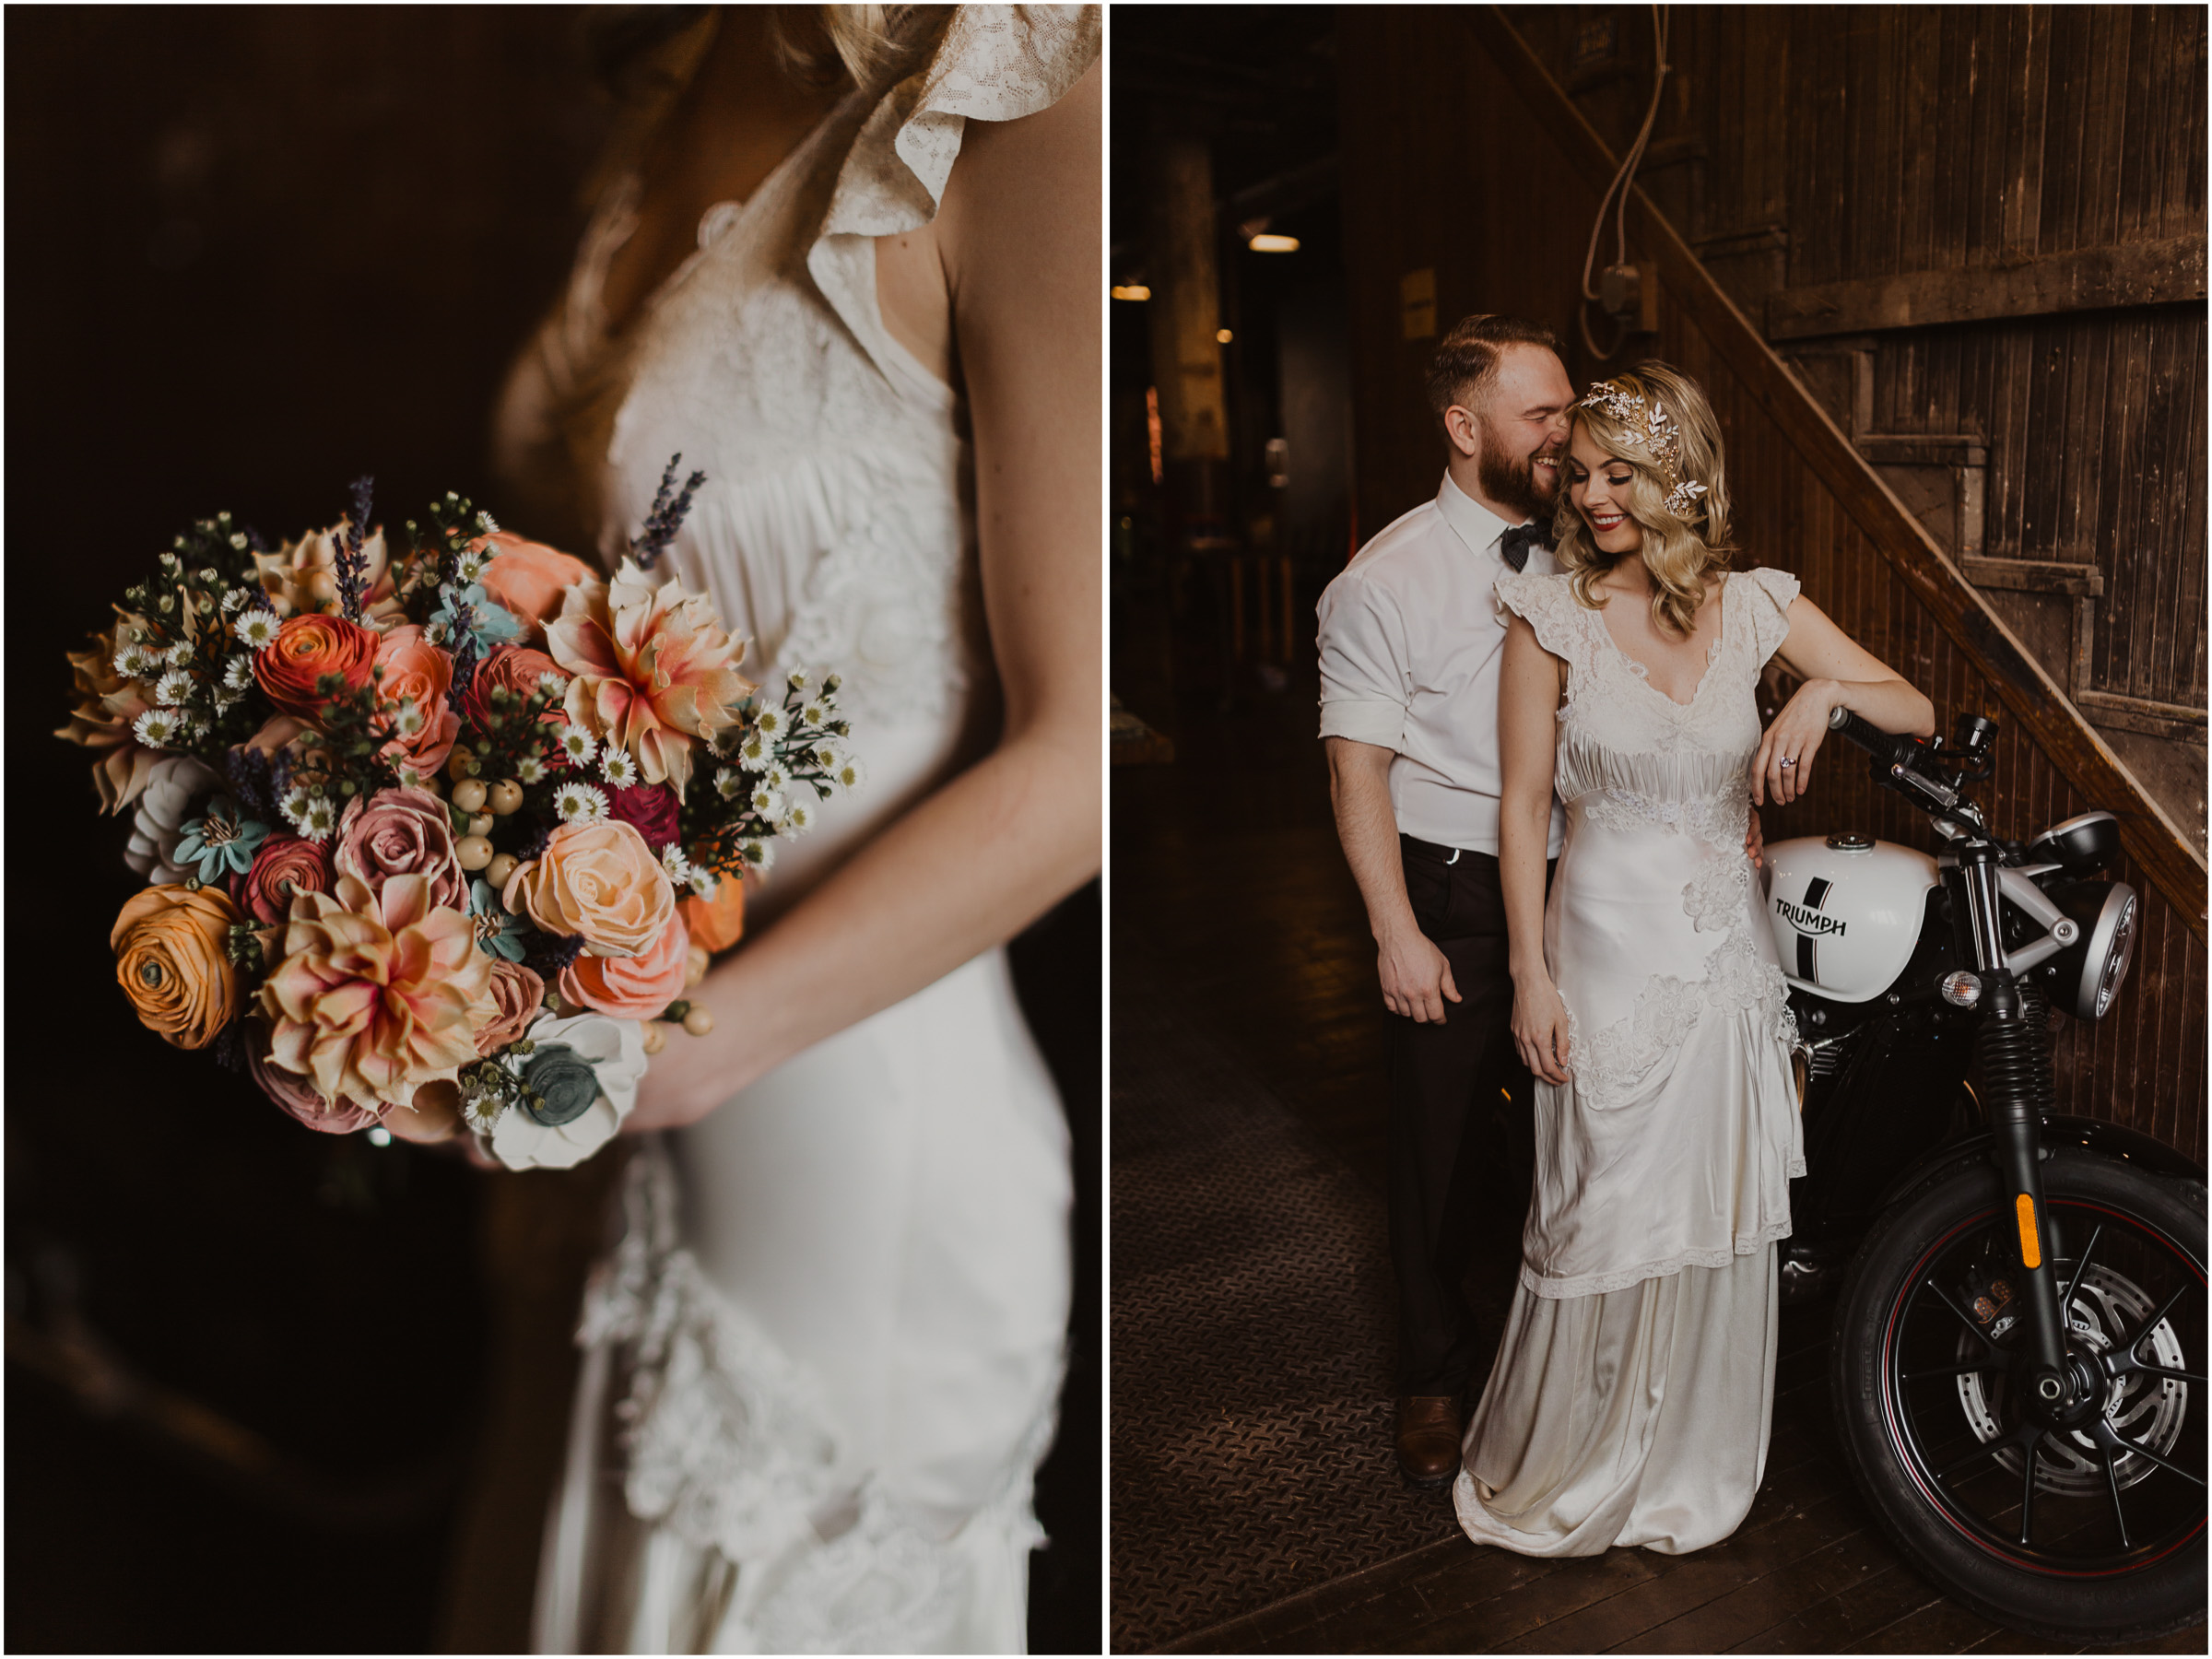 alyssa barletter photography styled shoot wedding inspiration kansas city west bottoms photographer motorcycle edgy intimate-19.jpg